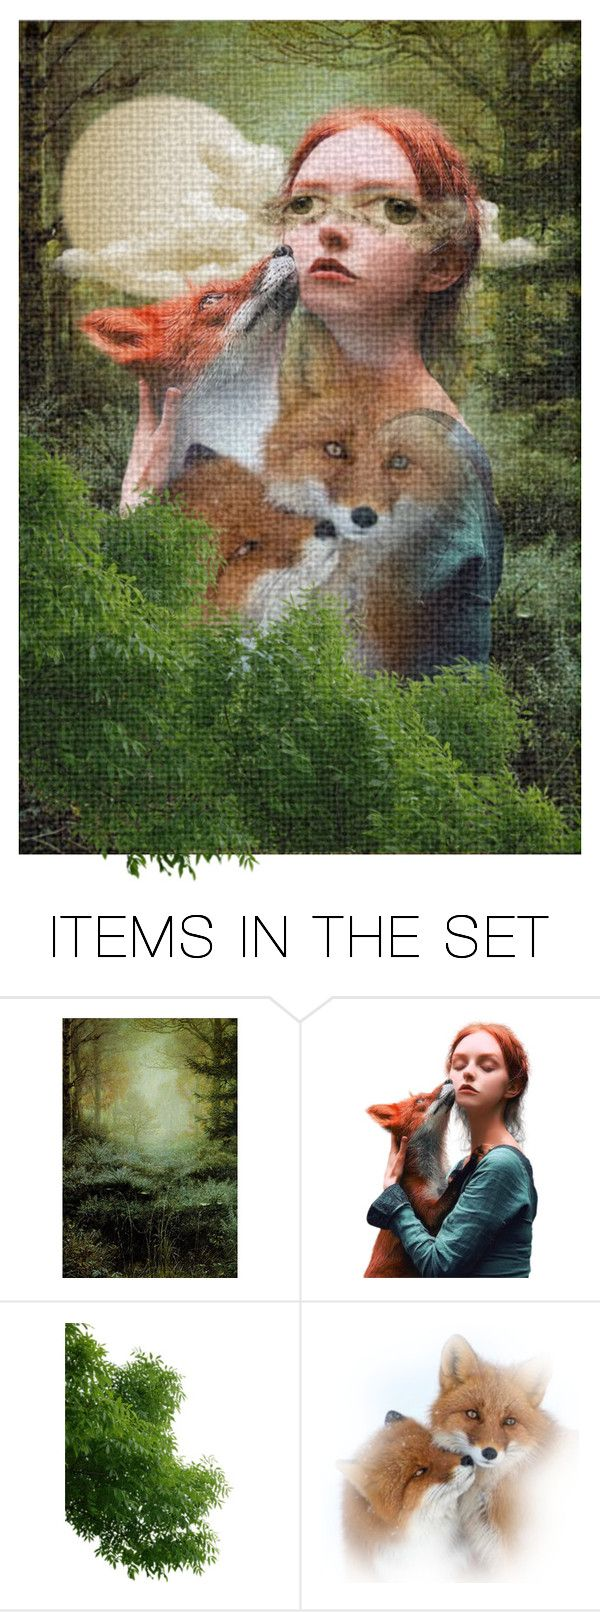 """a really weird, vivid dream..."" by gabrielleleroy ❤ liked on Polyvore featuring art and artset"